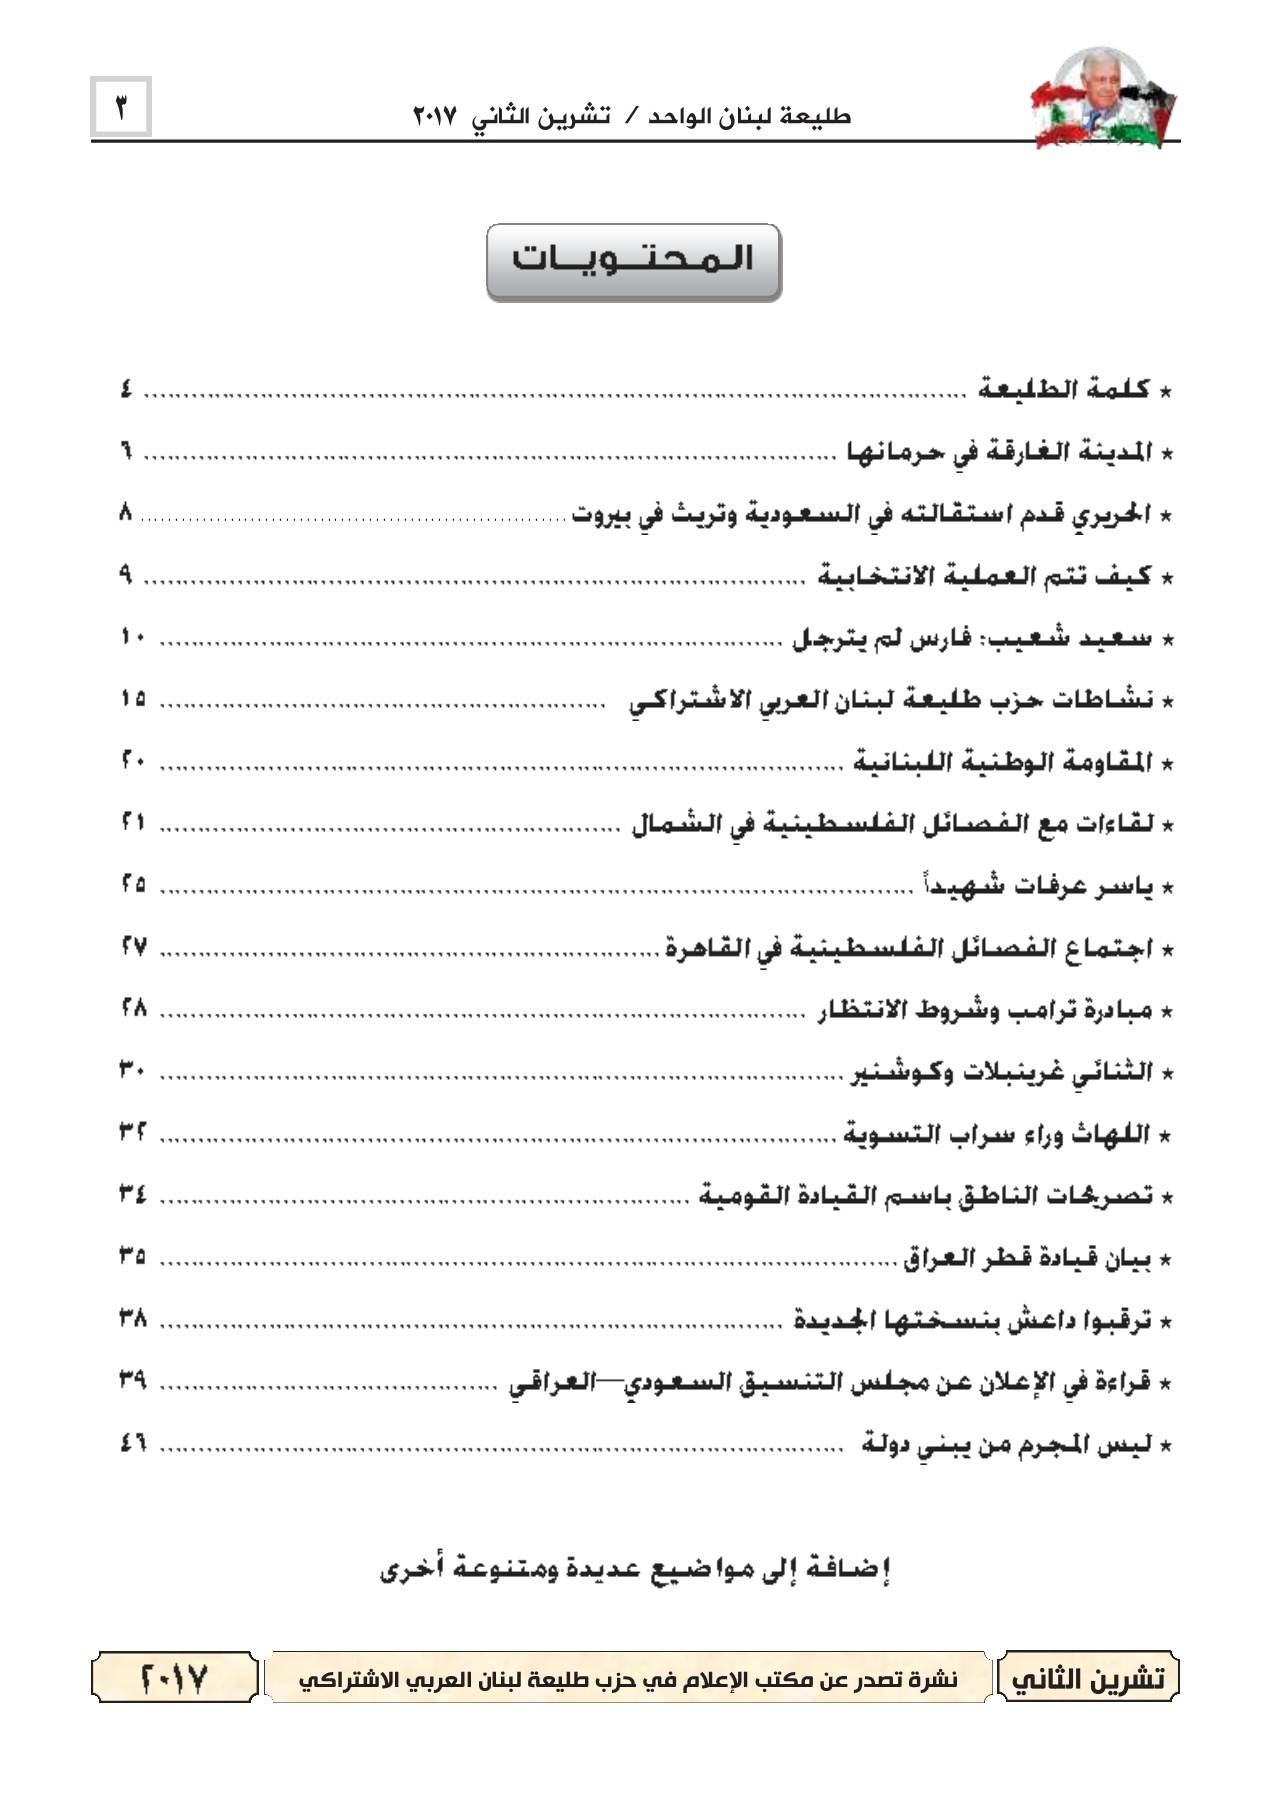 bf4e9a0e1 مجلة طليعة لبنان عدد تسرين الثاني 2017 Pages 1 - 50 - Text Version | AnyFlip